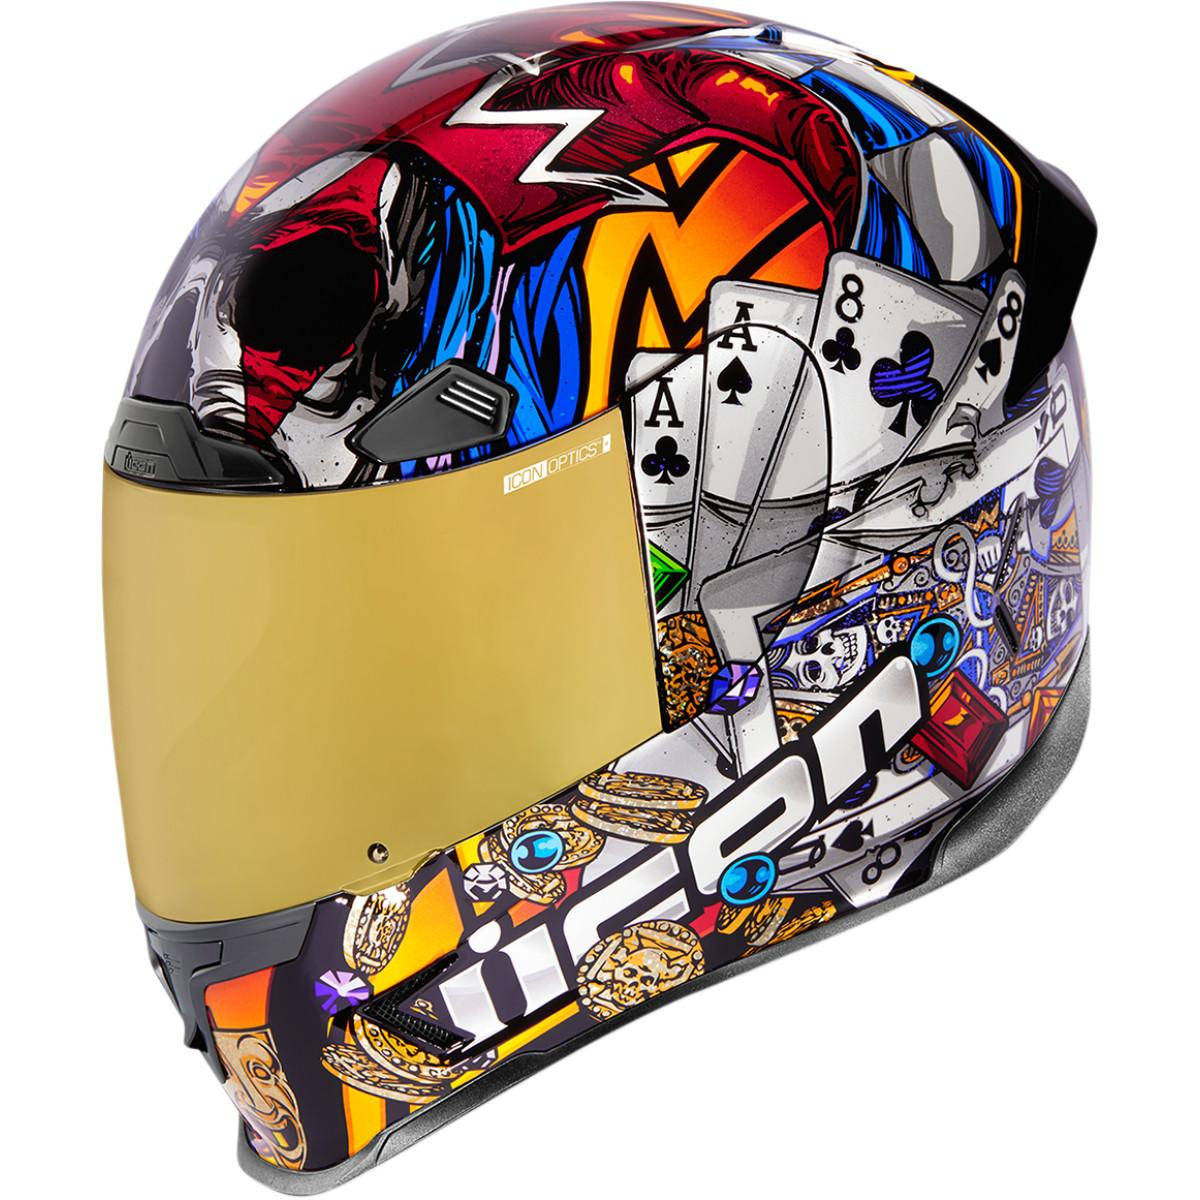 Casco Airframe Pro ™ Lucky Lid 3